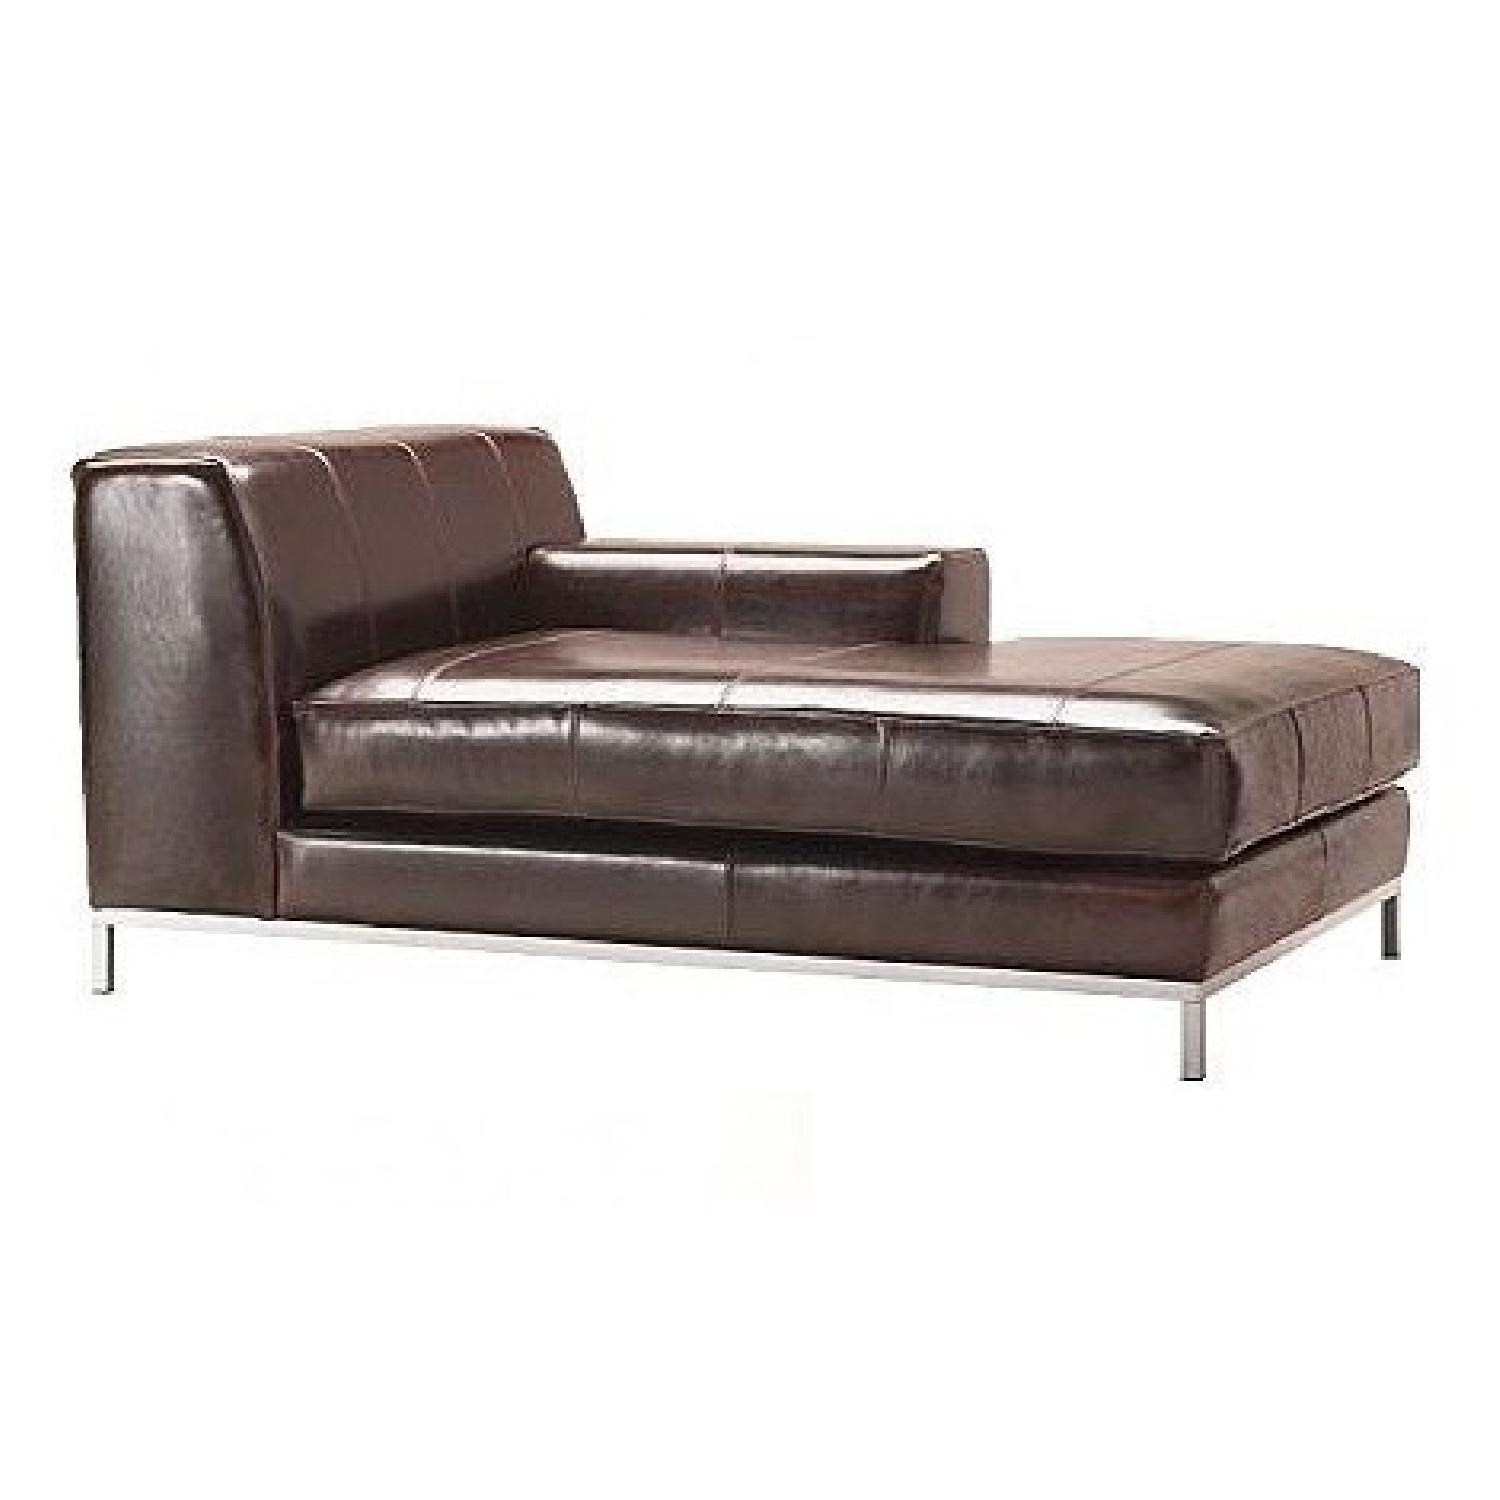 Ikea Kramfors Leather Right Chaise Lounge - image-0